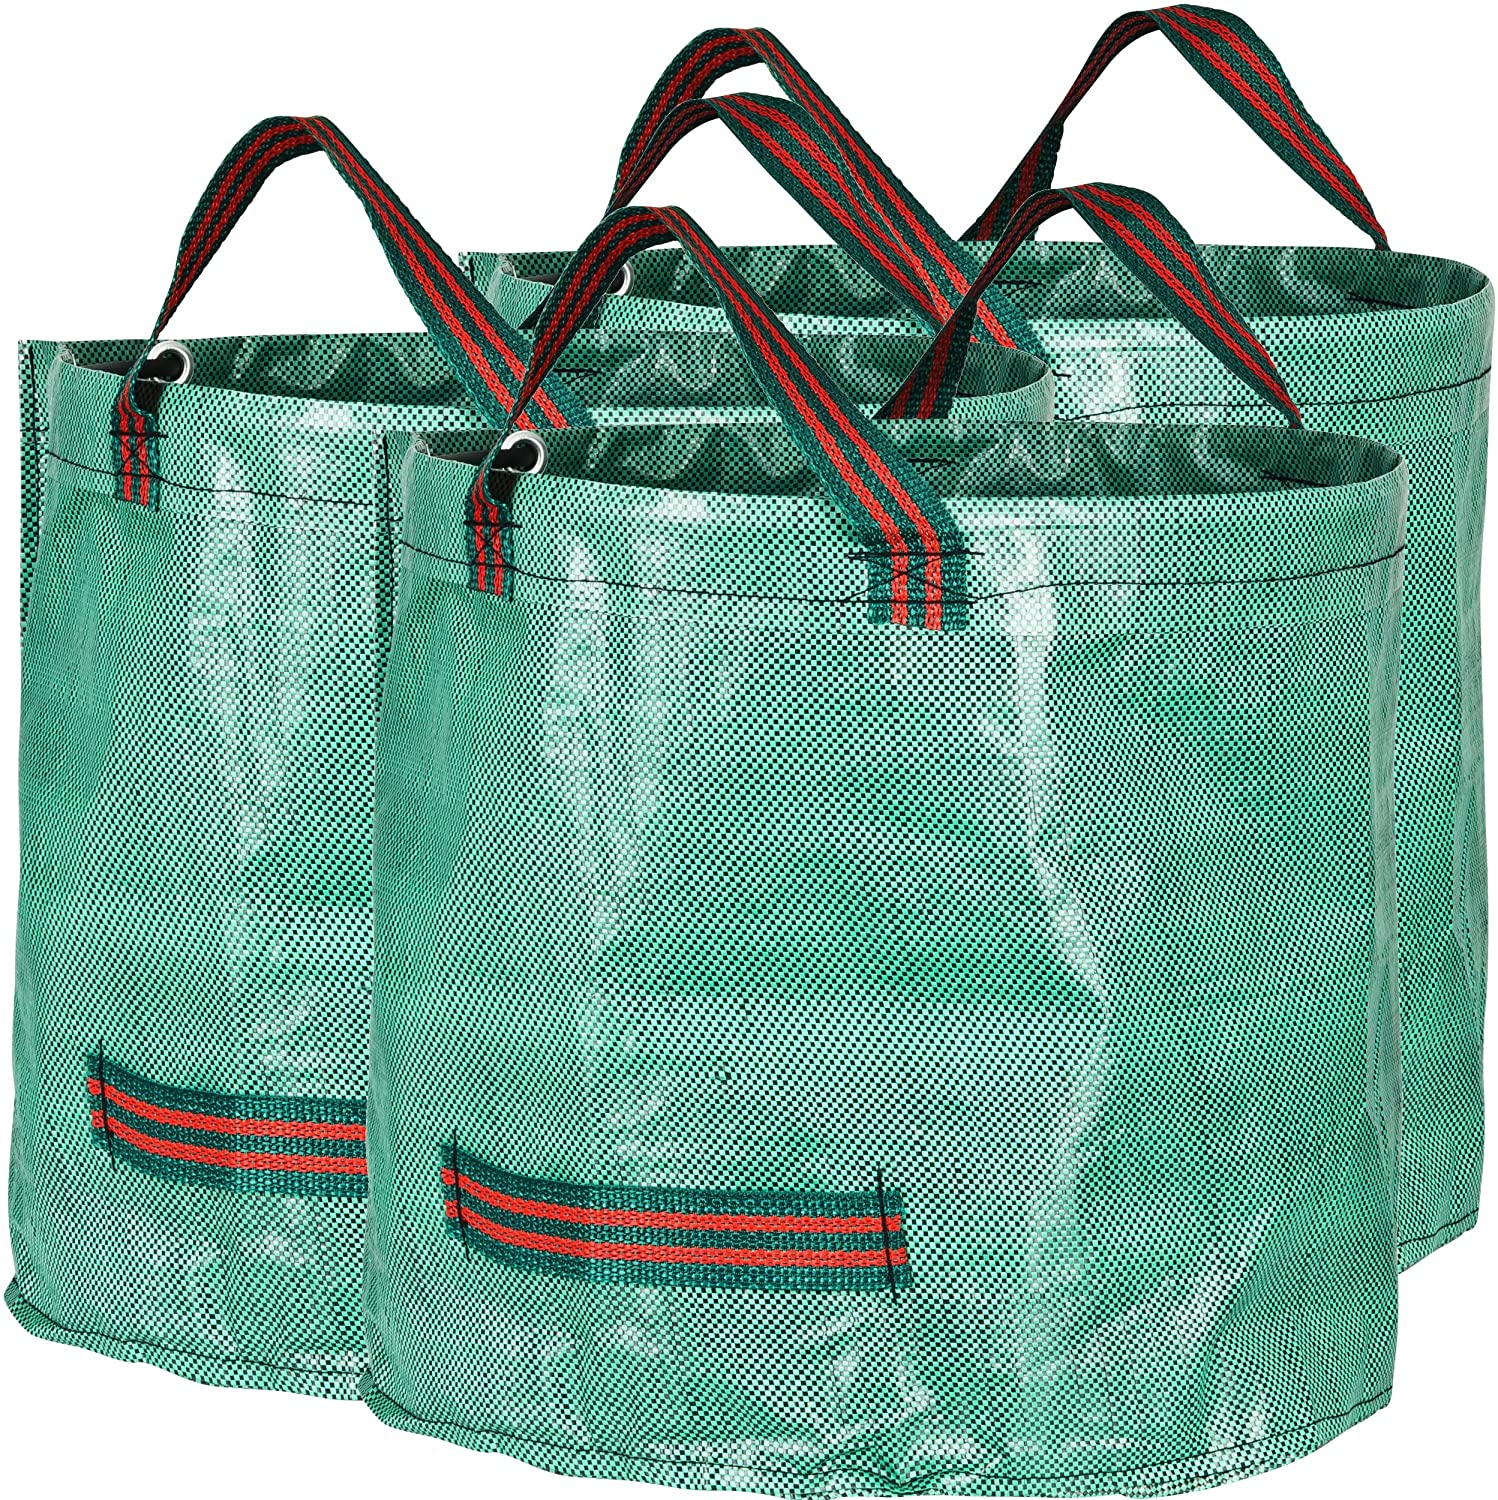 GardenMate 3-Pack 16 Gallons Reusable Garden Waste Bags (H15, D18 inches) - Yard Waste Bags